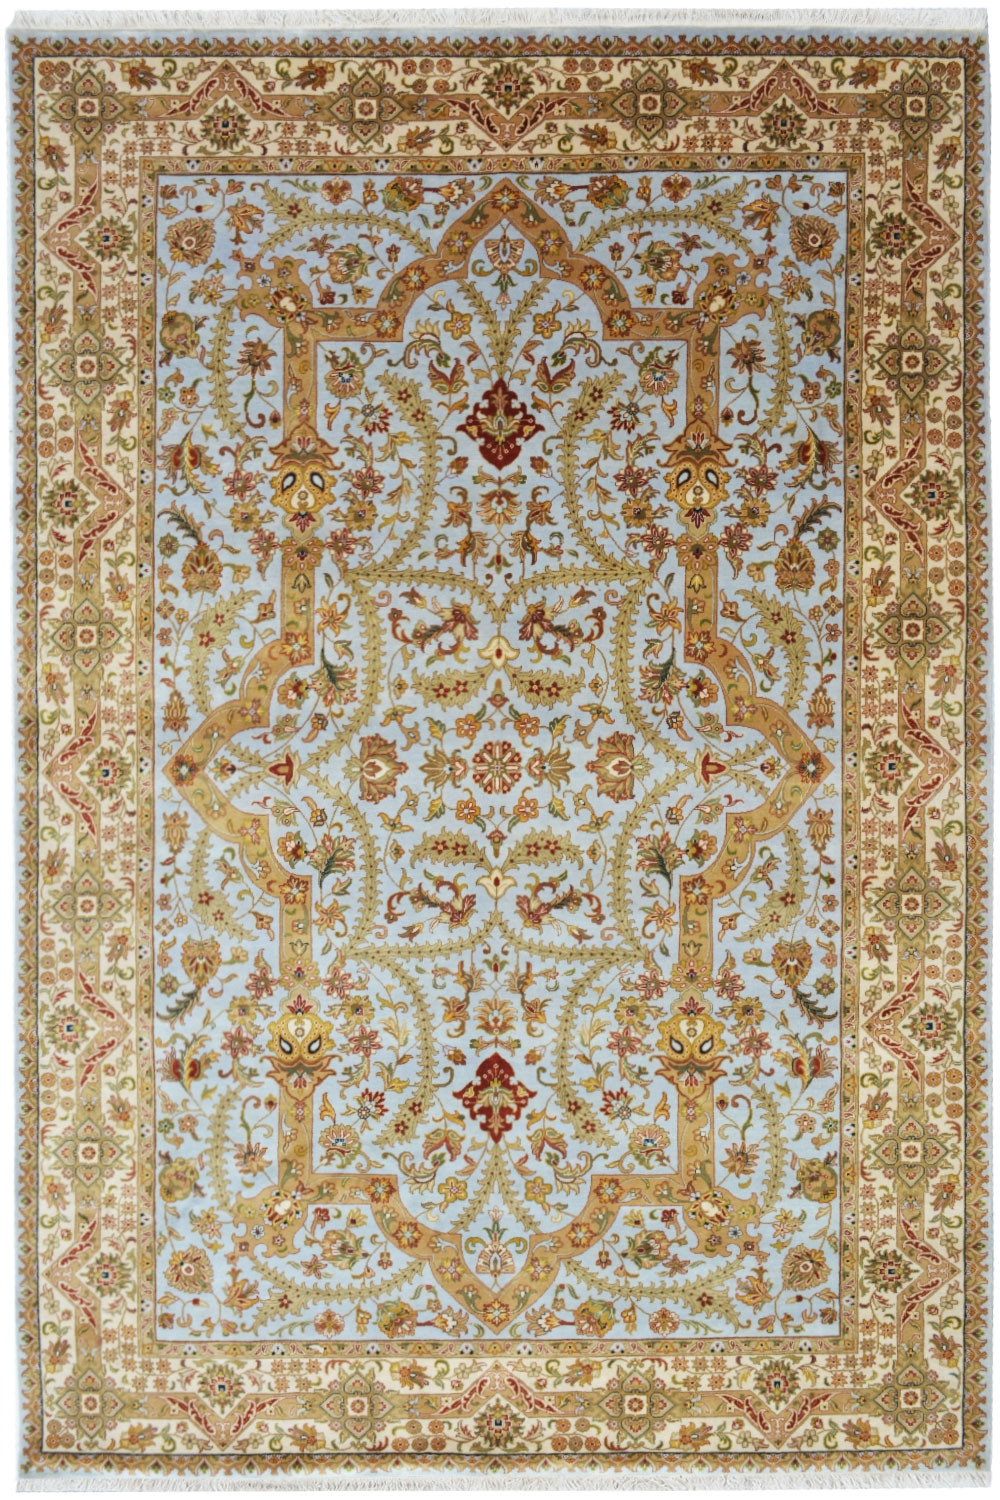 Shop Wool Rugs Online And Find Lilihaan Handknotted Wool